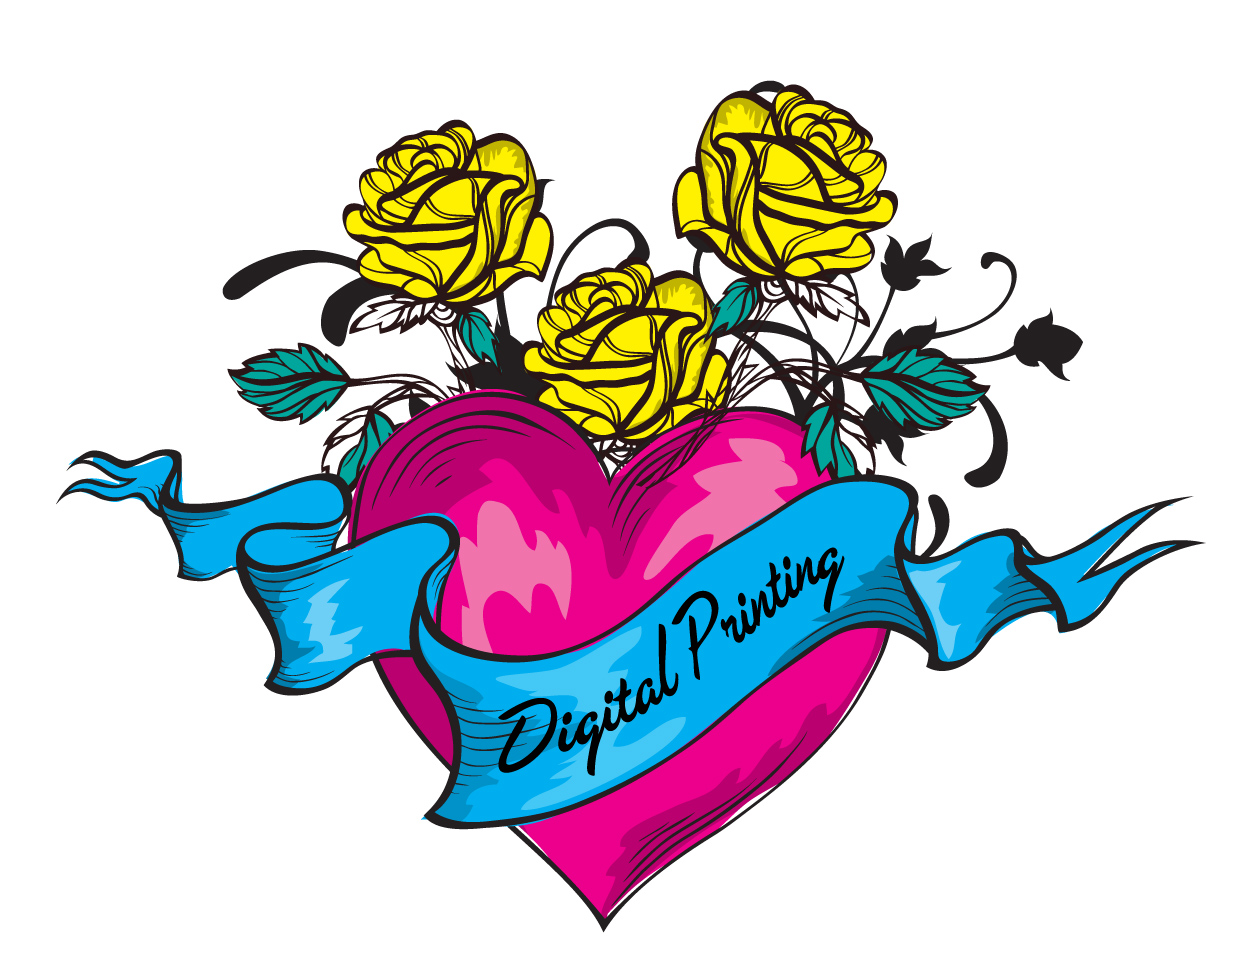 Top 10 Things We Love About Digital Printing